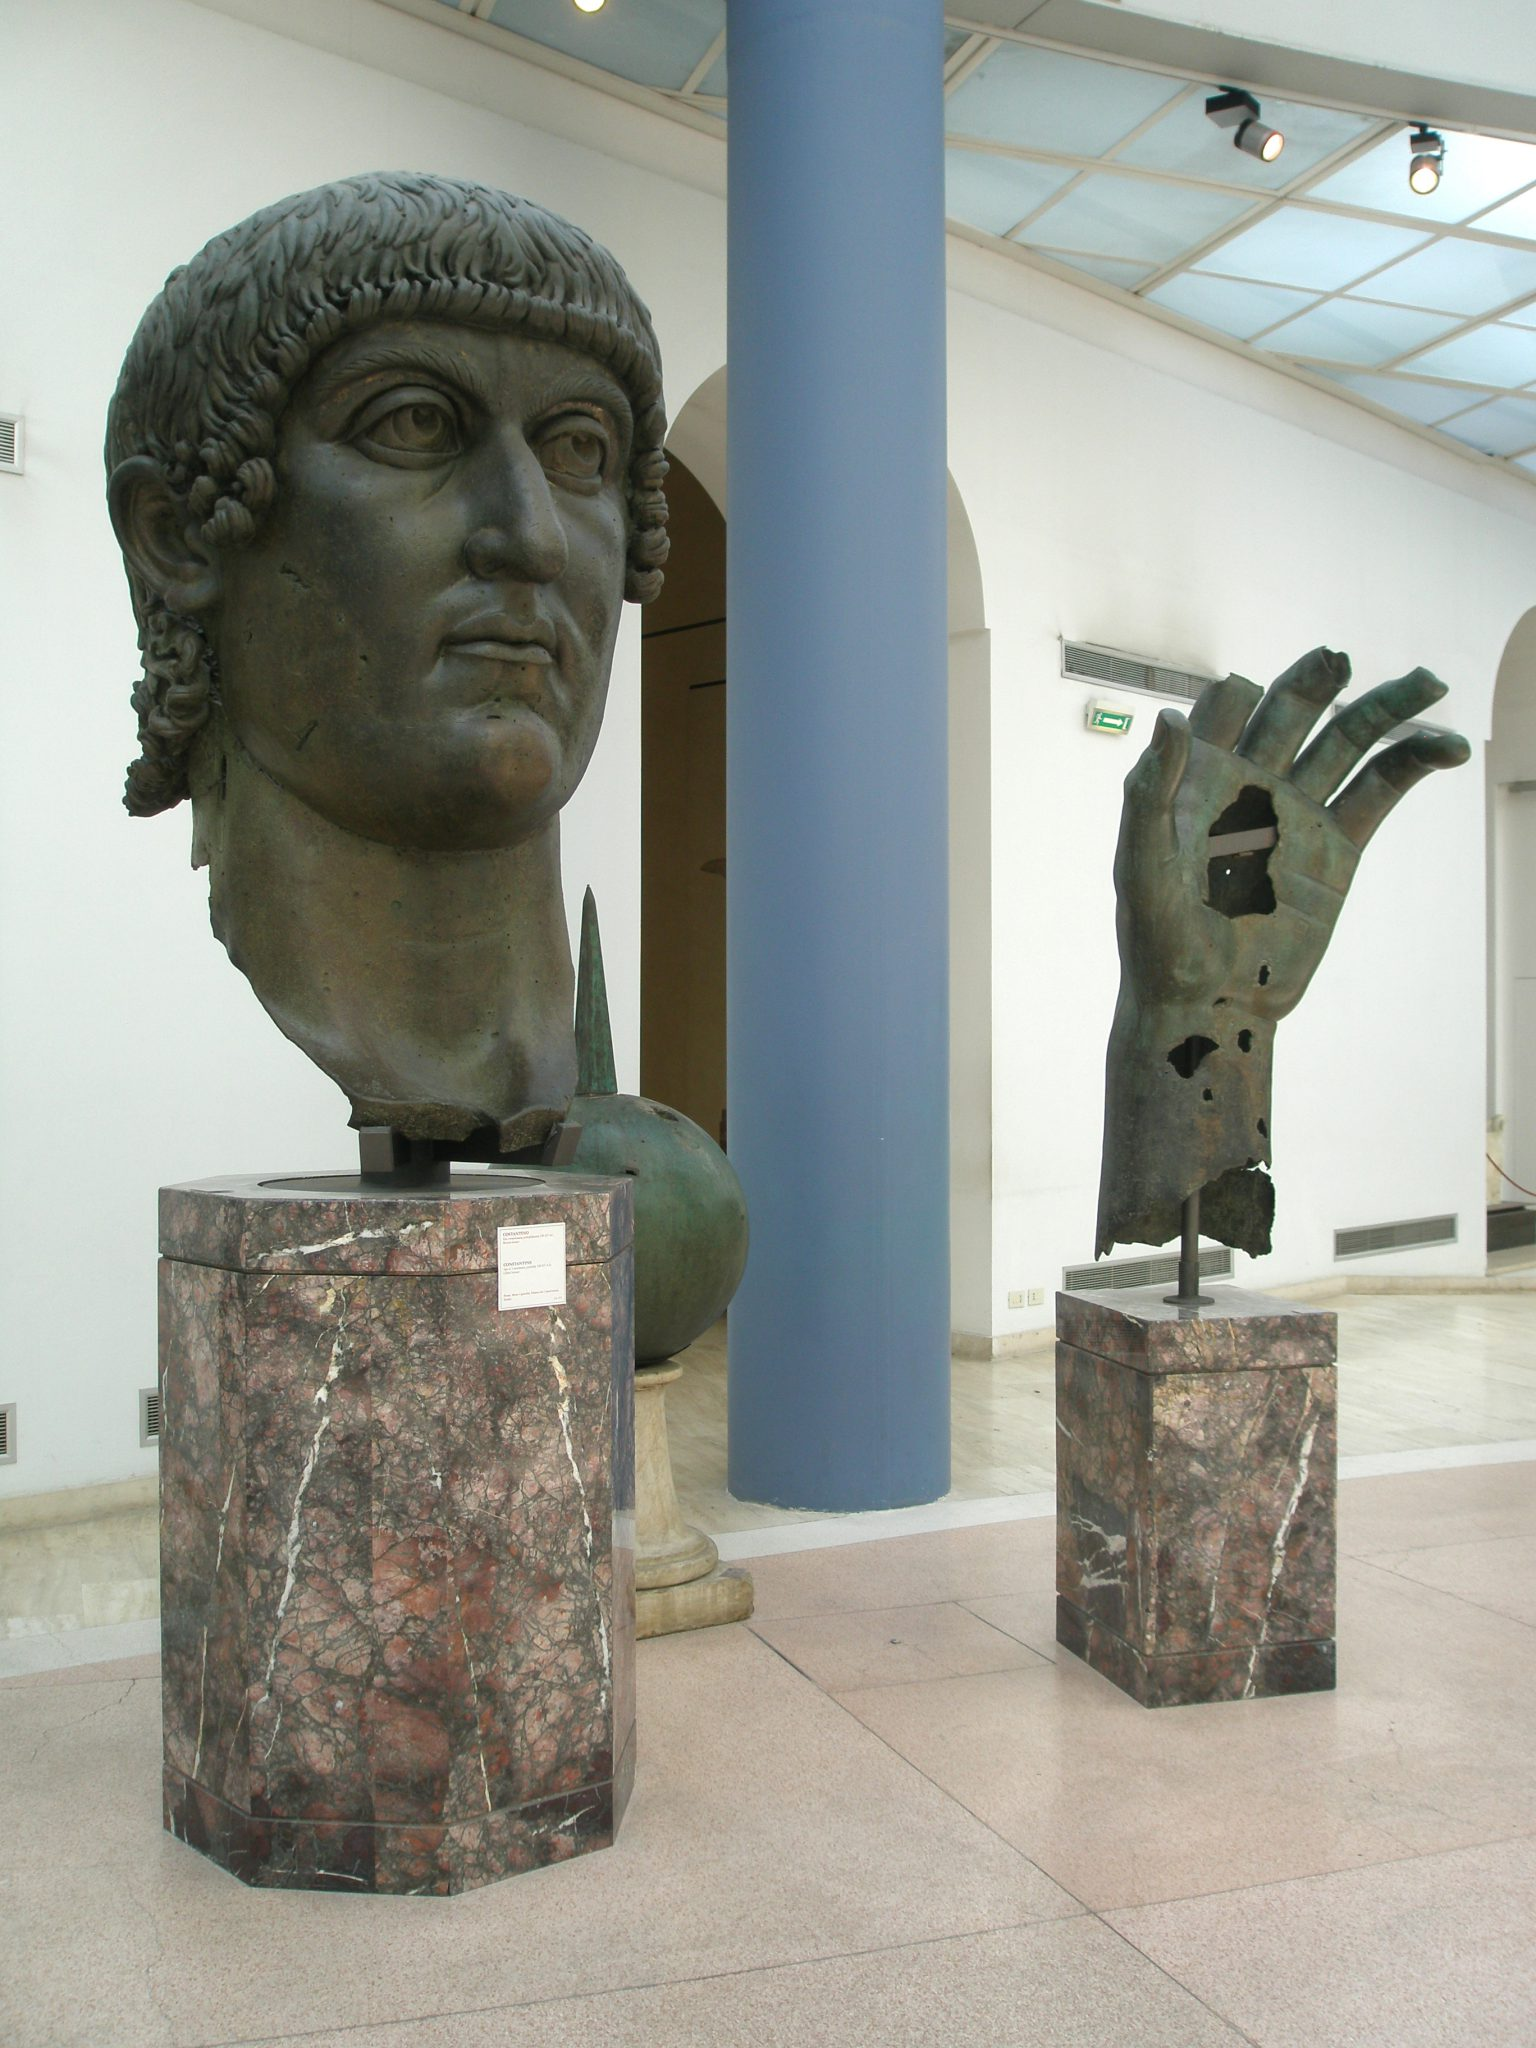 Fragments from the colossal bronze of Constantine: head, globe & hand (4th century AD)